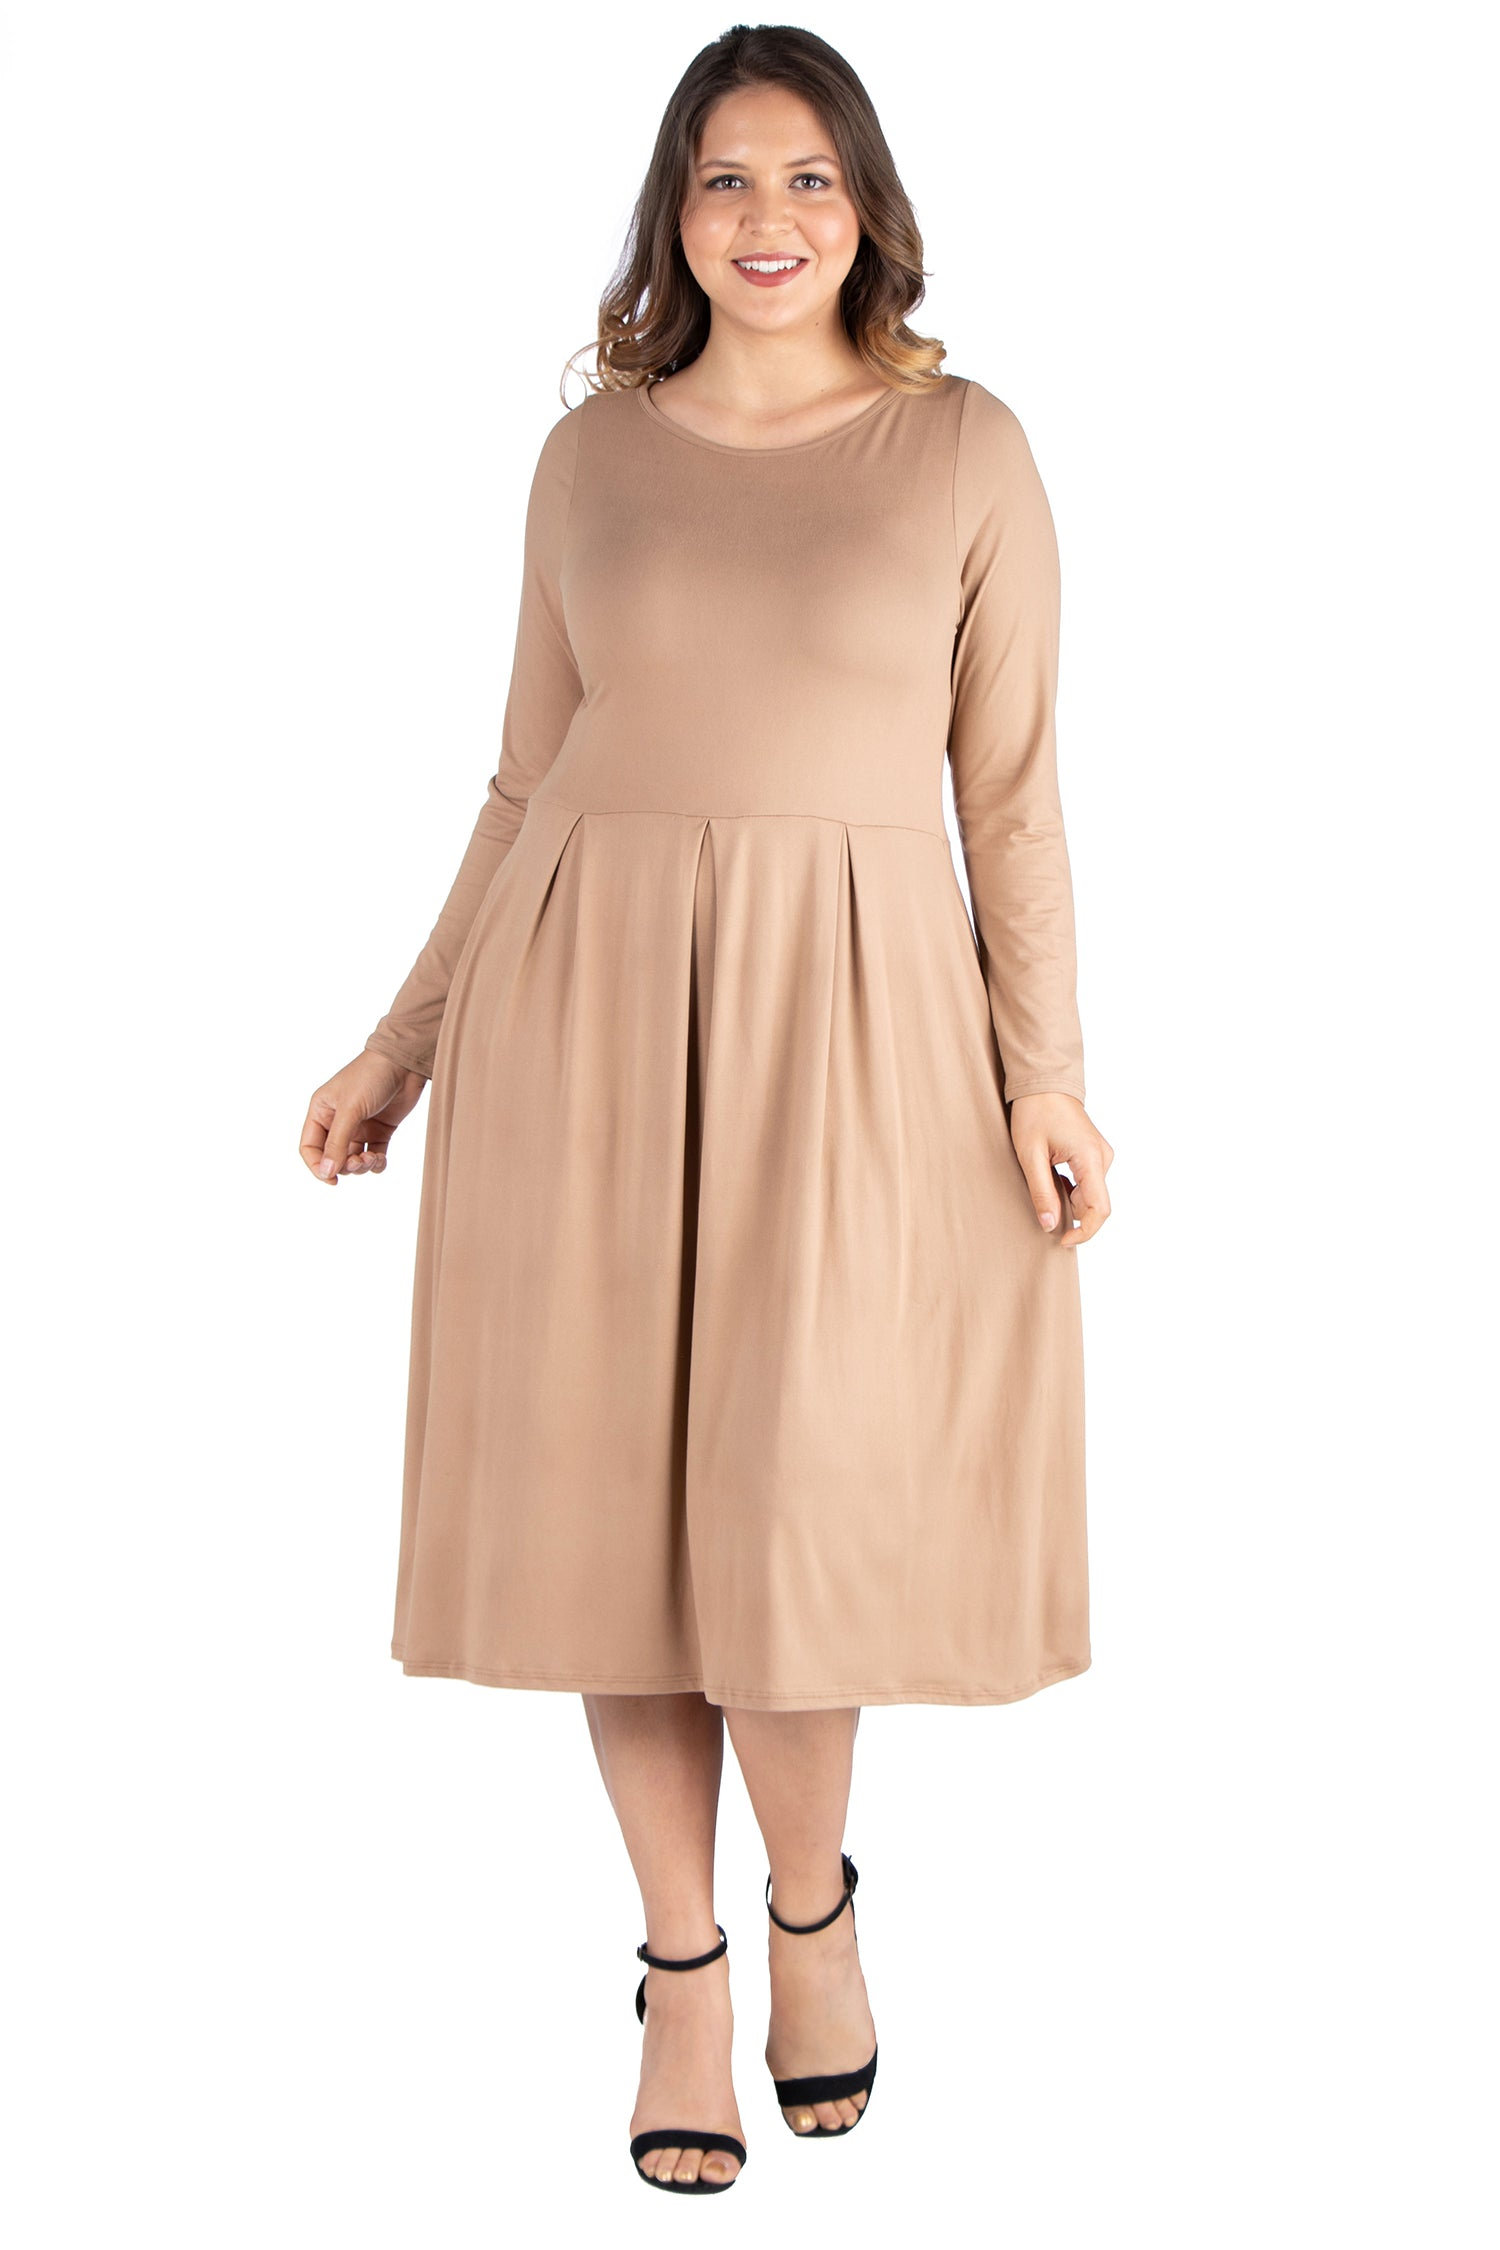 24seven Comfort Apparel Long Sleeve Fit and Flare Plus Size Midi Dress-DRESSES-24Seven Comfort Apparel-WHEAT-1X-24/7 Comfort Apparel